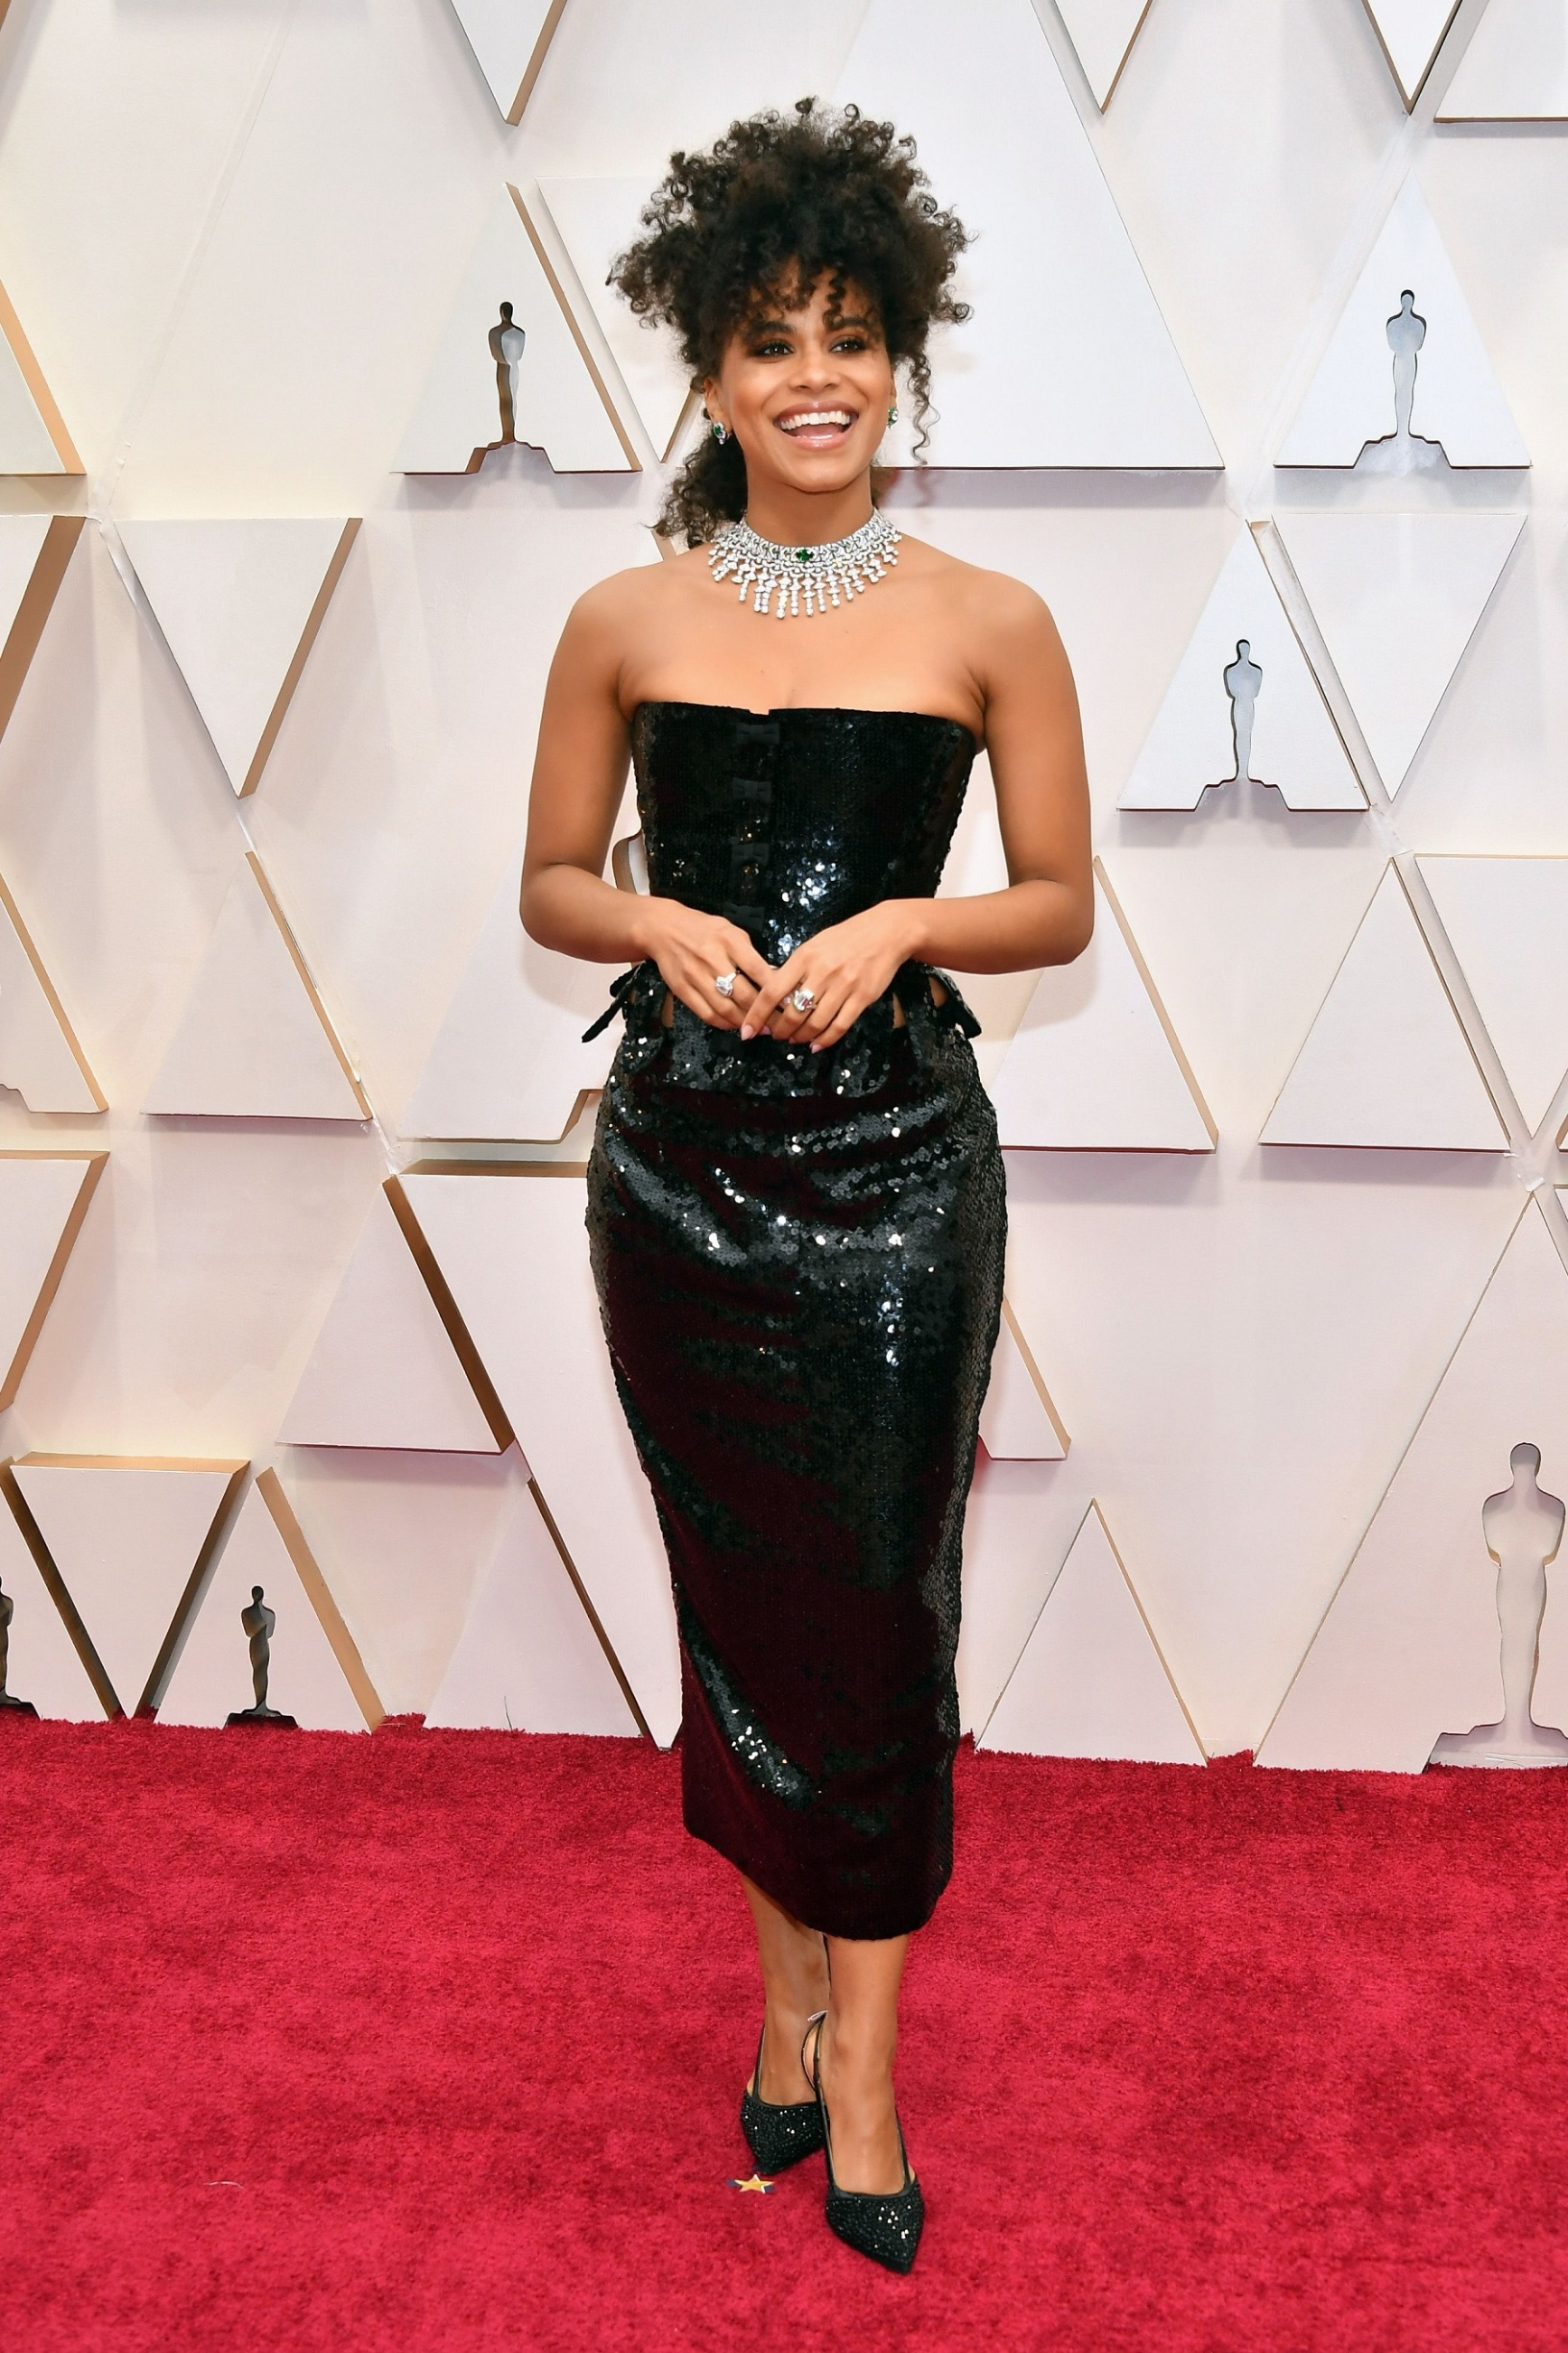 HOLLYWOOD, CALIFORNIA - FEBRUARY 09: Zazie Beetz attends the 92nd Annual Academy Awards at Hollywood and Highland on February 09, 2020 in Hollywood, California. (Photo by Amy Sussman/Getty Images)